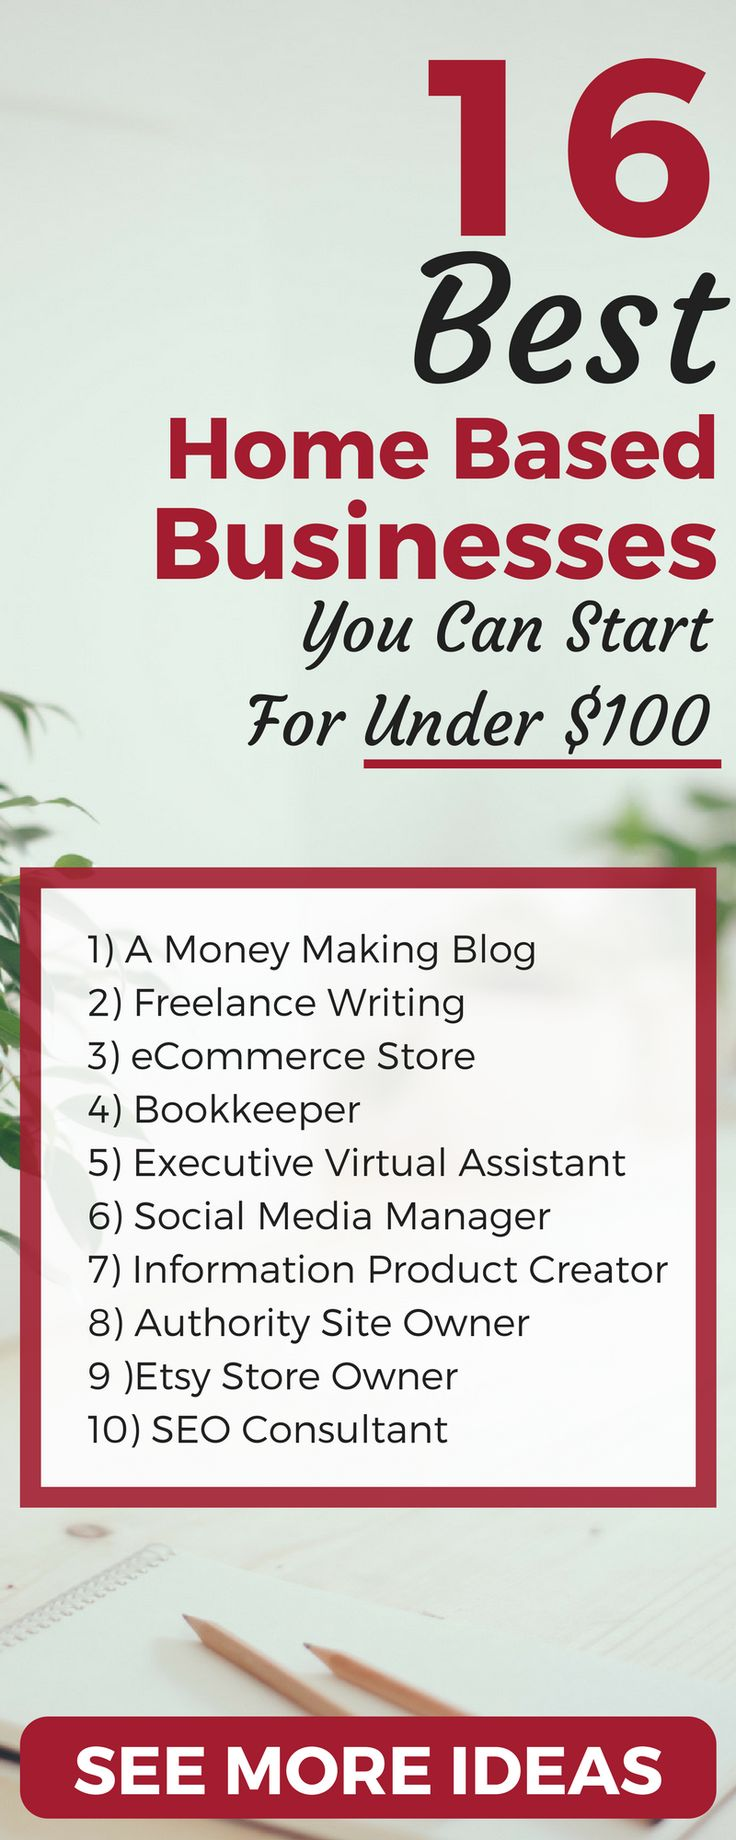 Want to work from home? Here's 16 of the fastest-growing home base business ideas. See the side hustles you can launch for under $100 to make extra money.